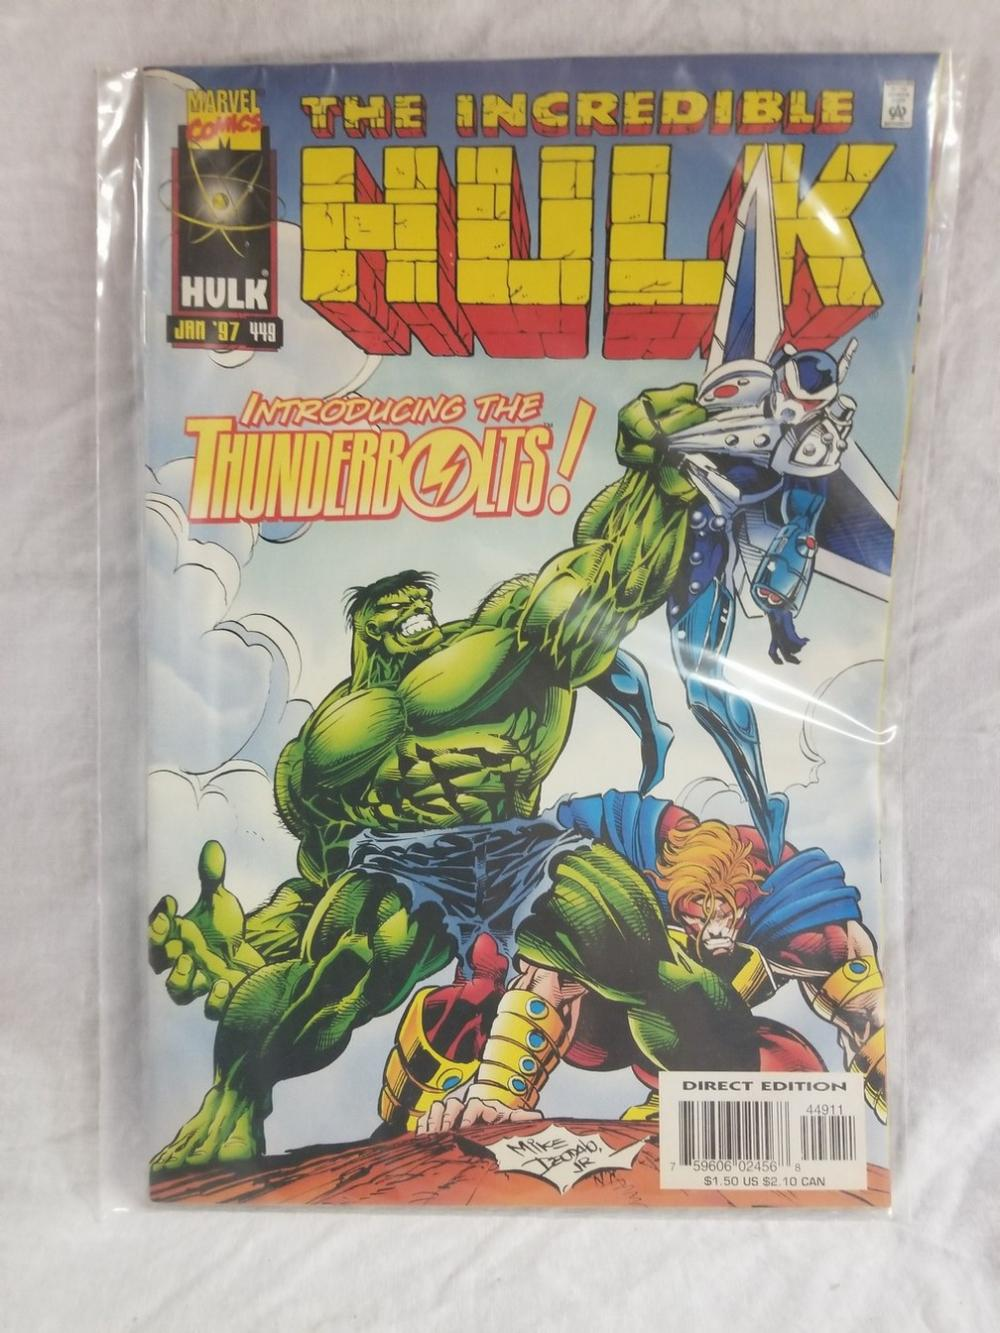 The Incredible Hulk Volume 2 Issue 449